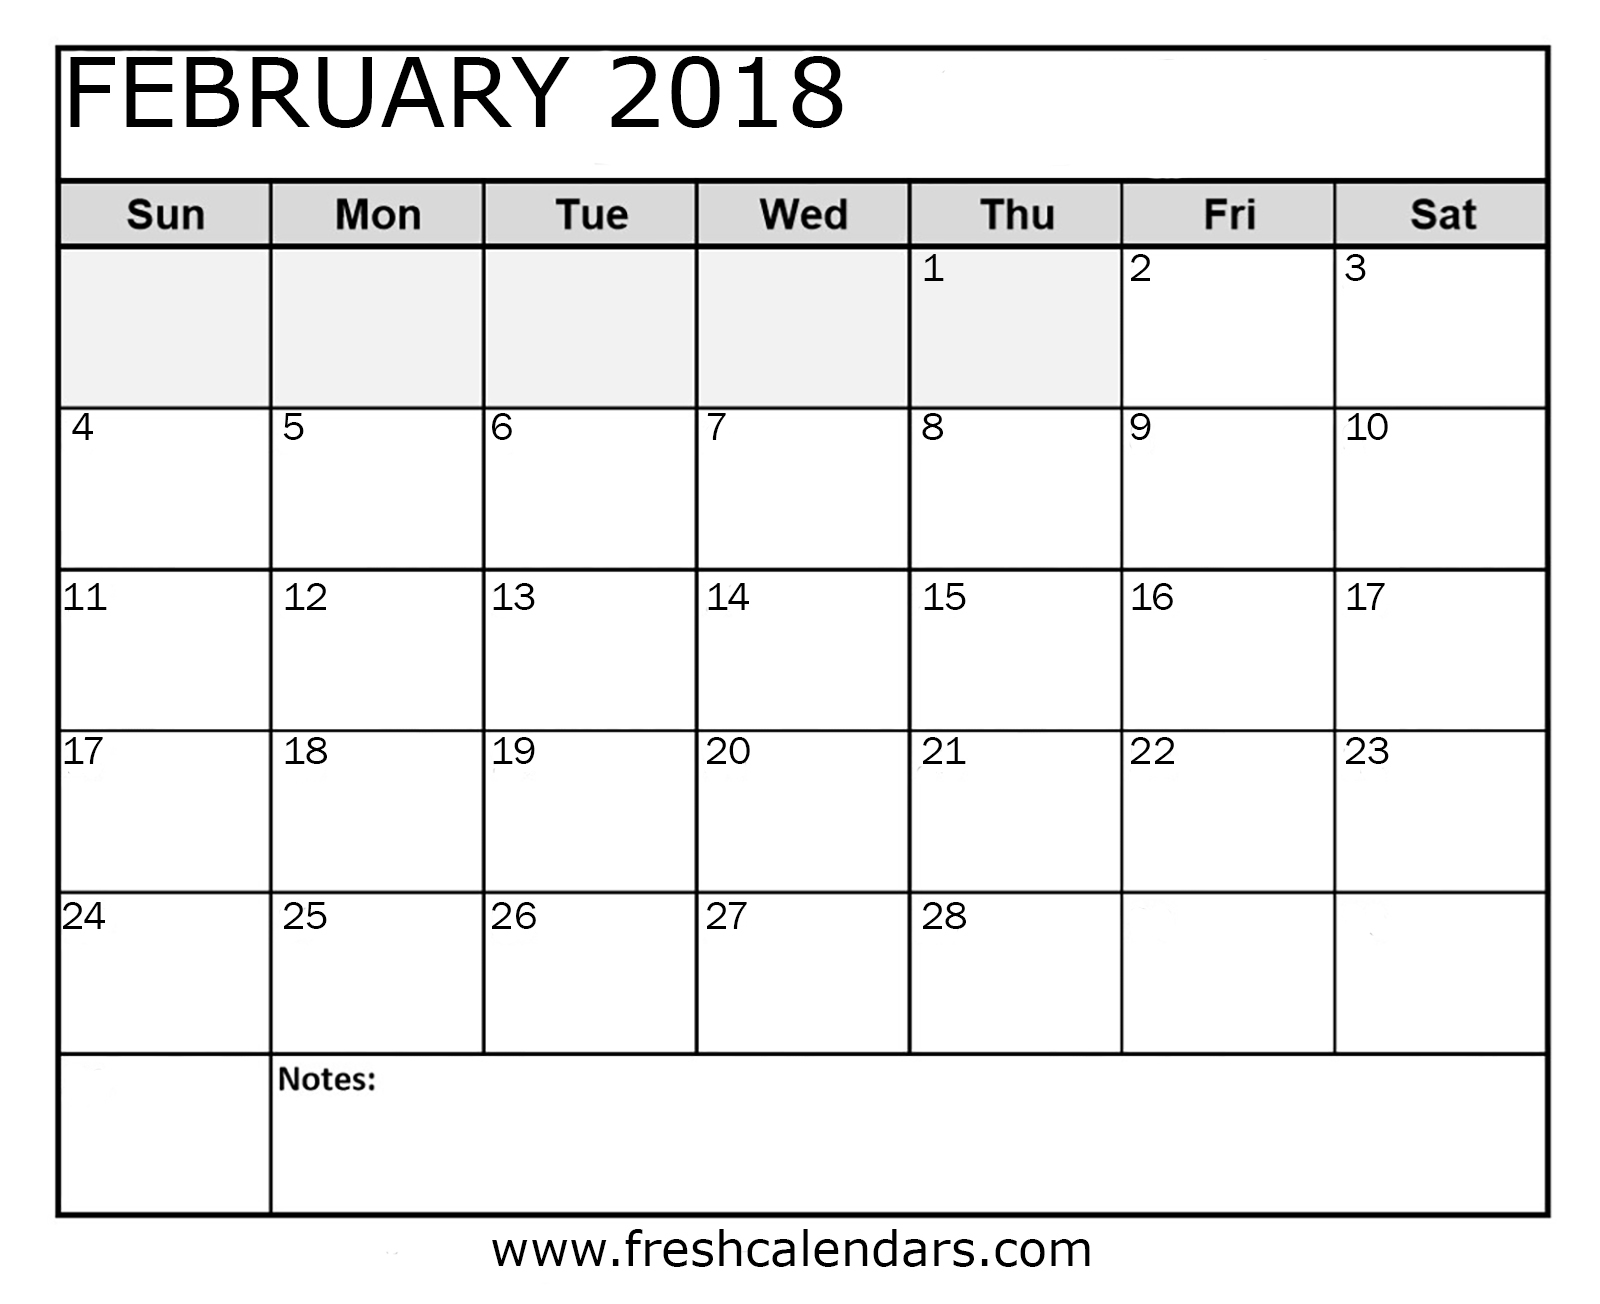 february calendar printable word pdf format with notes